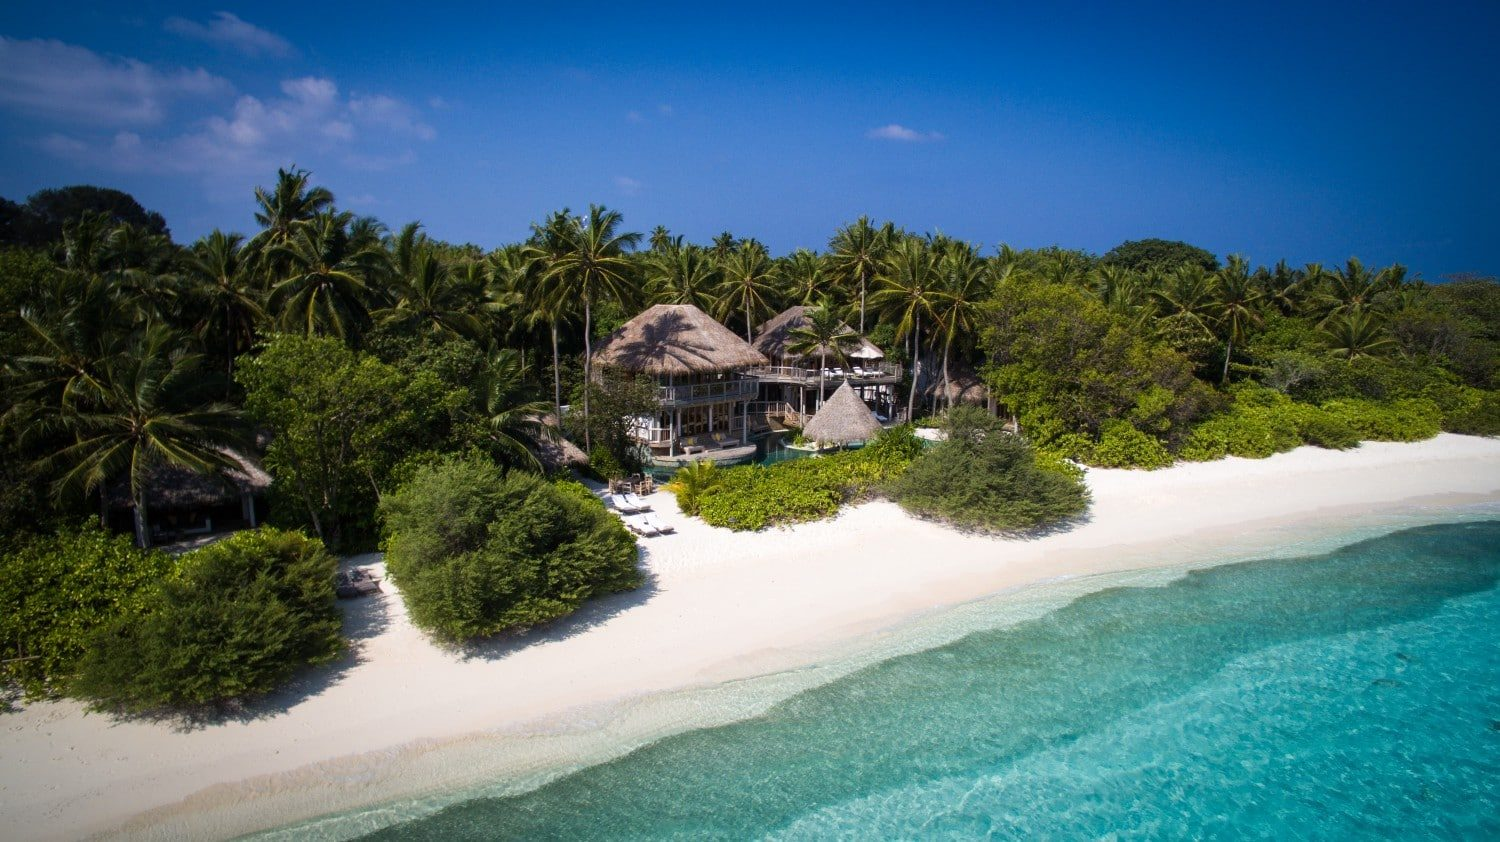 Soneva Fushi, Island Resort in the Maldives